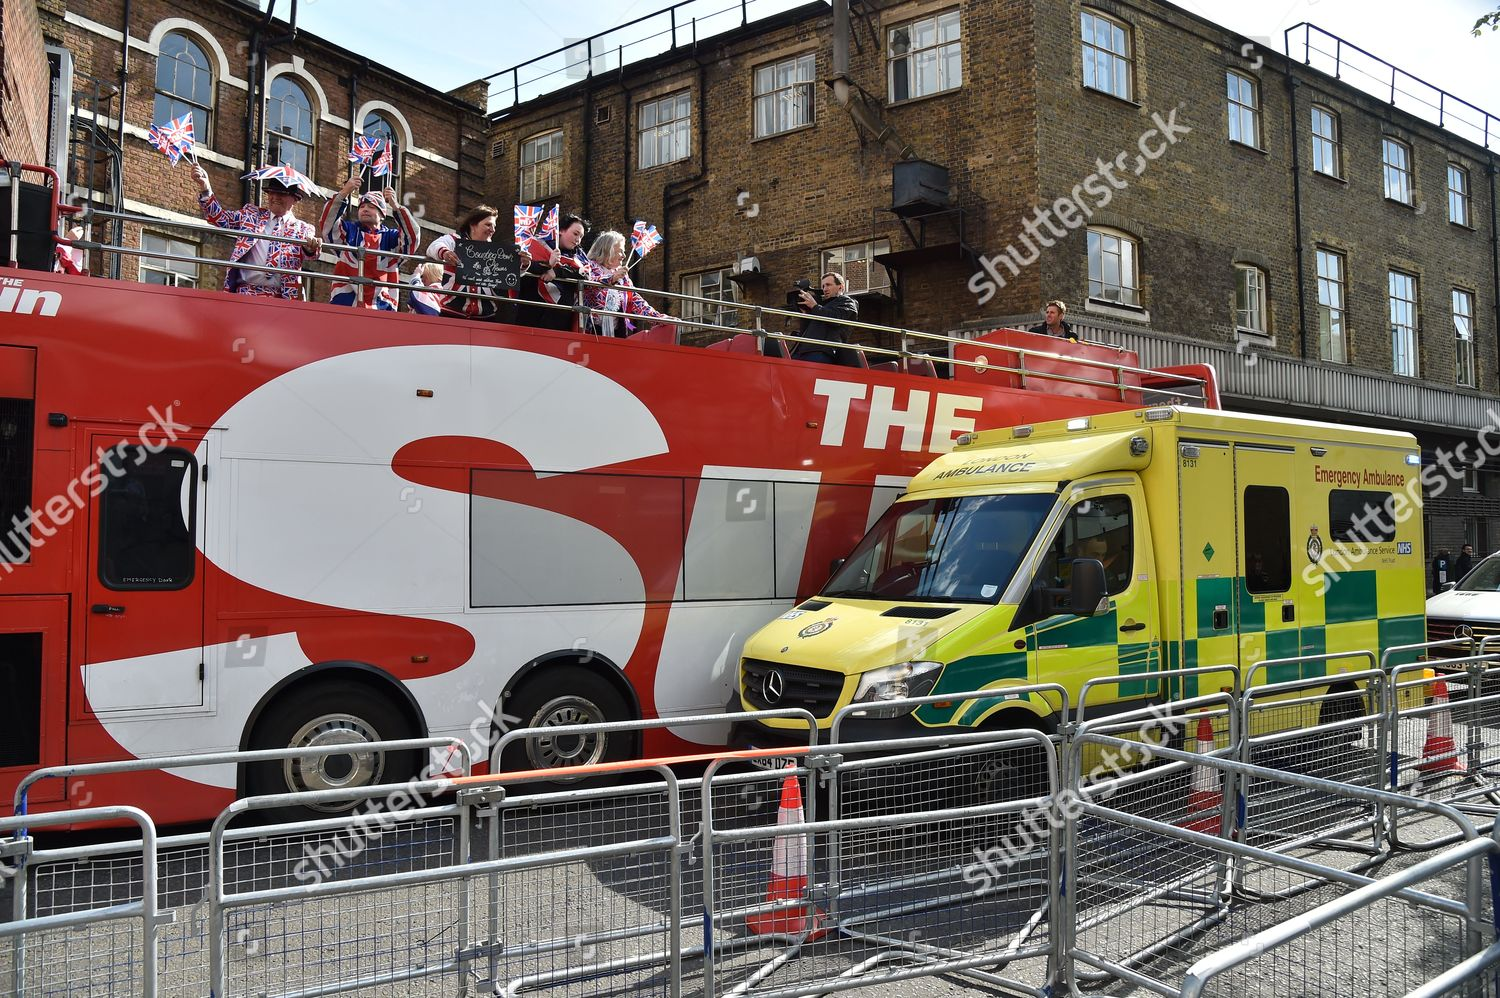 Sun bus blocks route ambulance outside Accident Editorial Stock